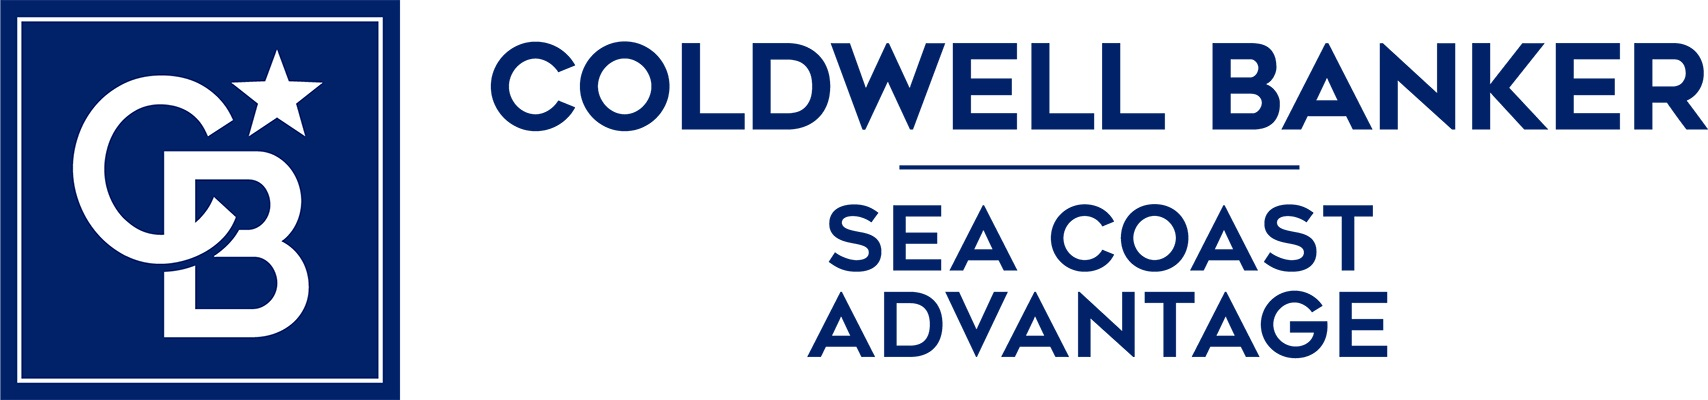 David Frost - Coldwell Banker Sea Coast Advantage Realty